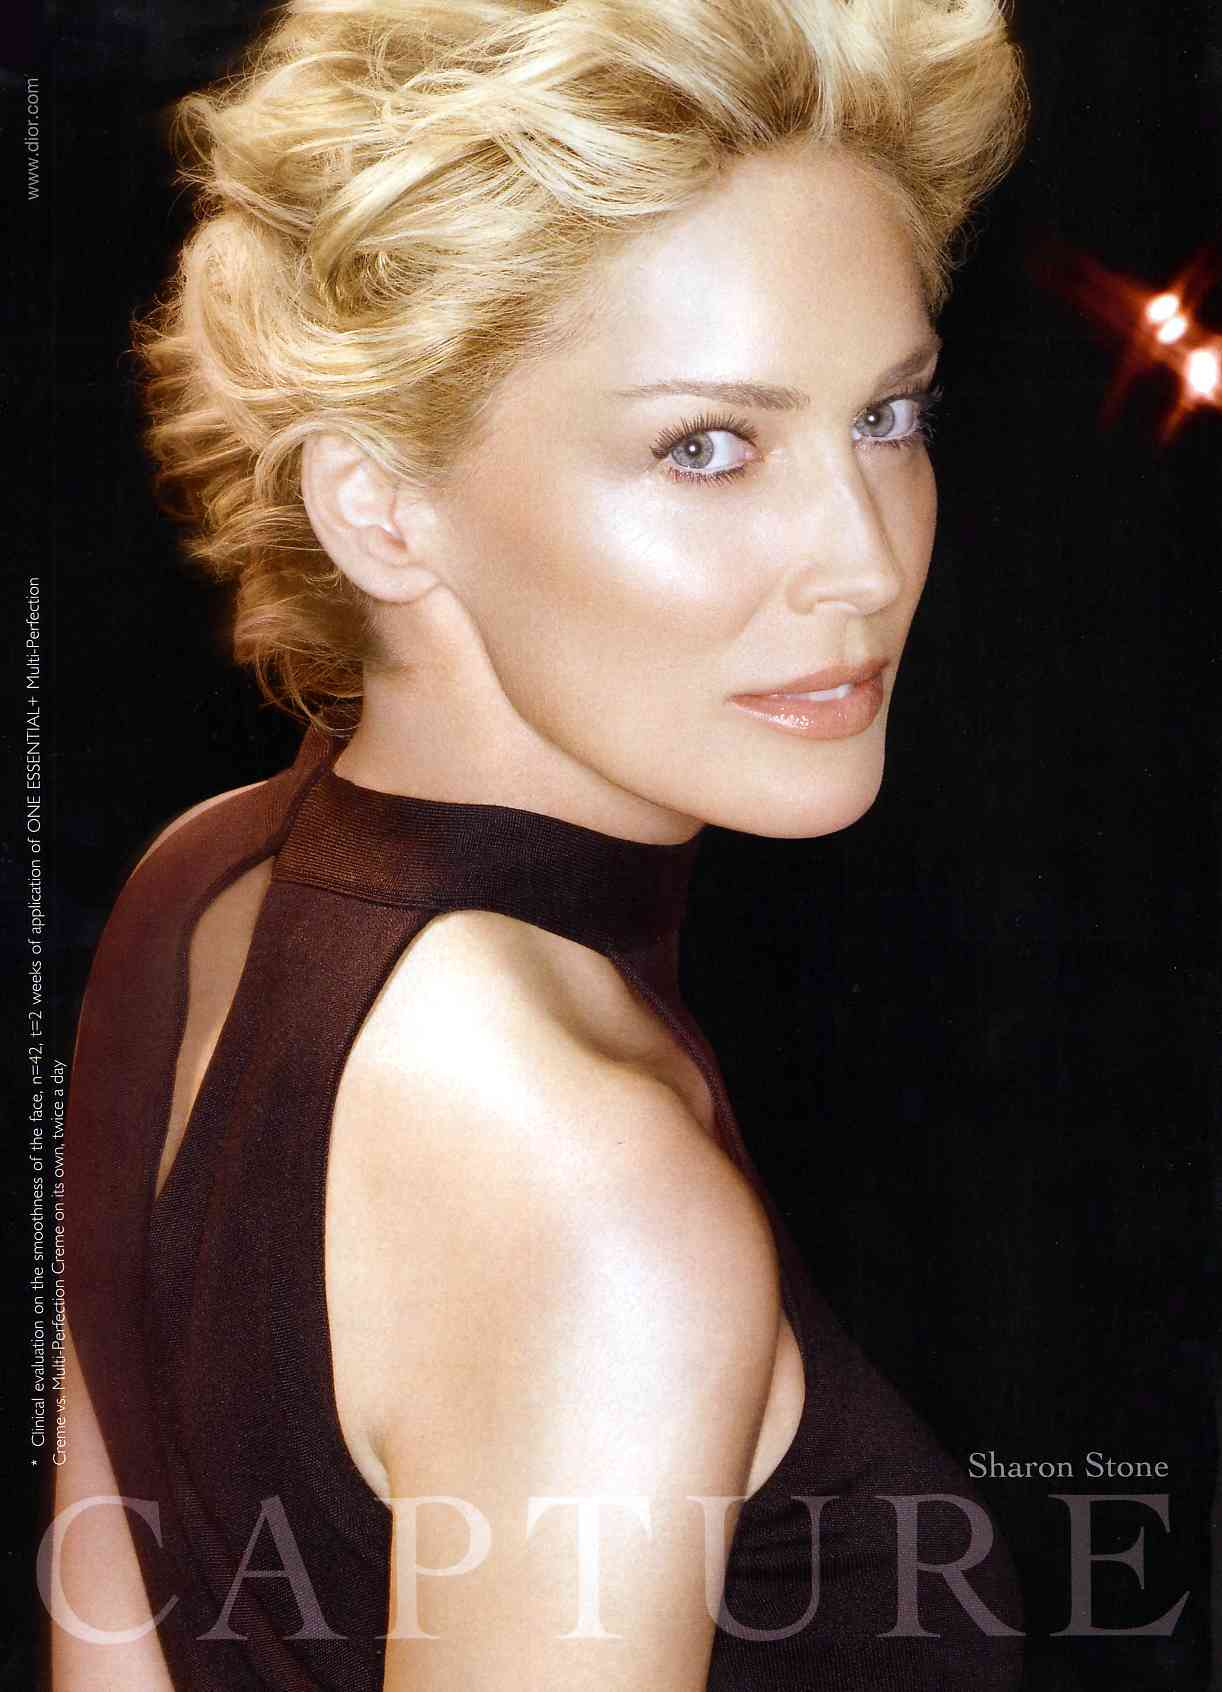 Index Of Planetems Yangabin Celebrites Sharonstone